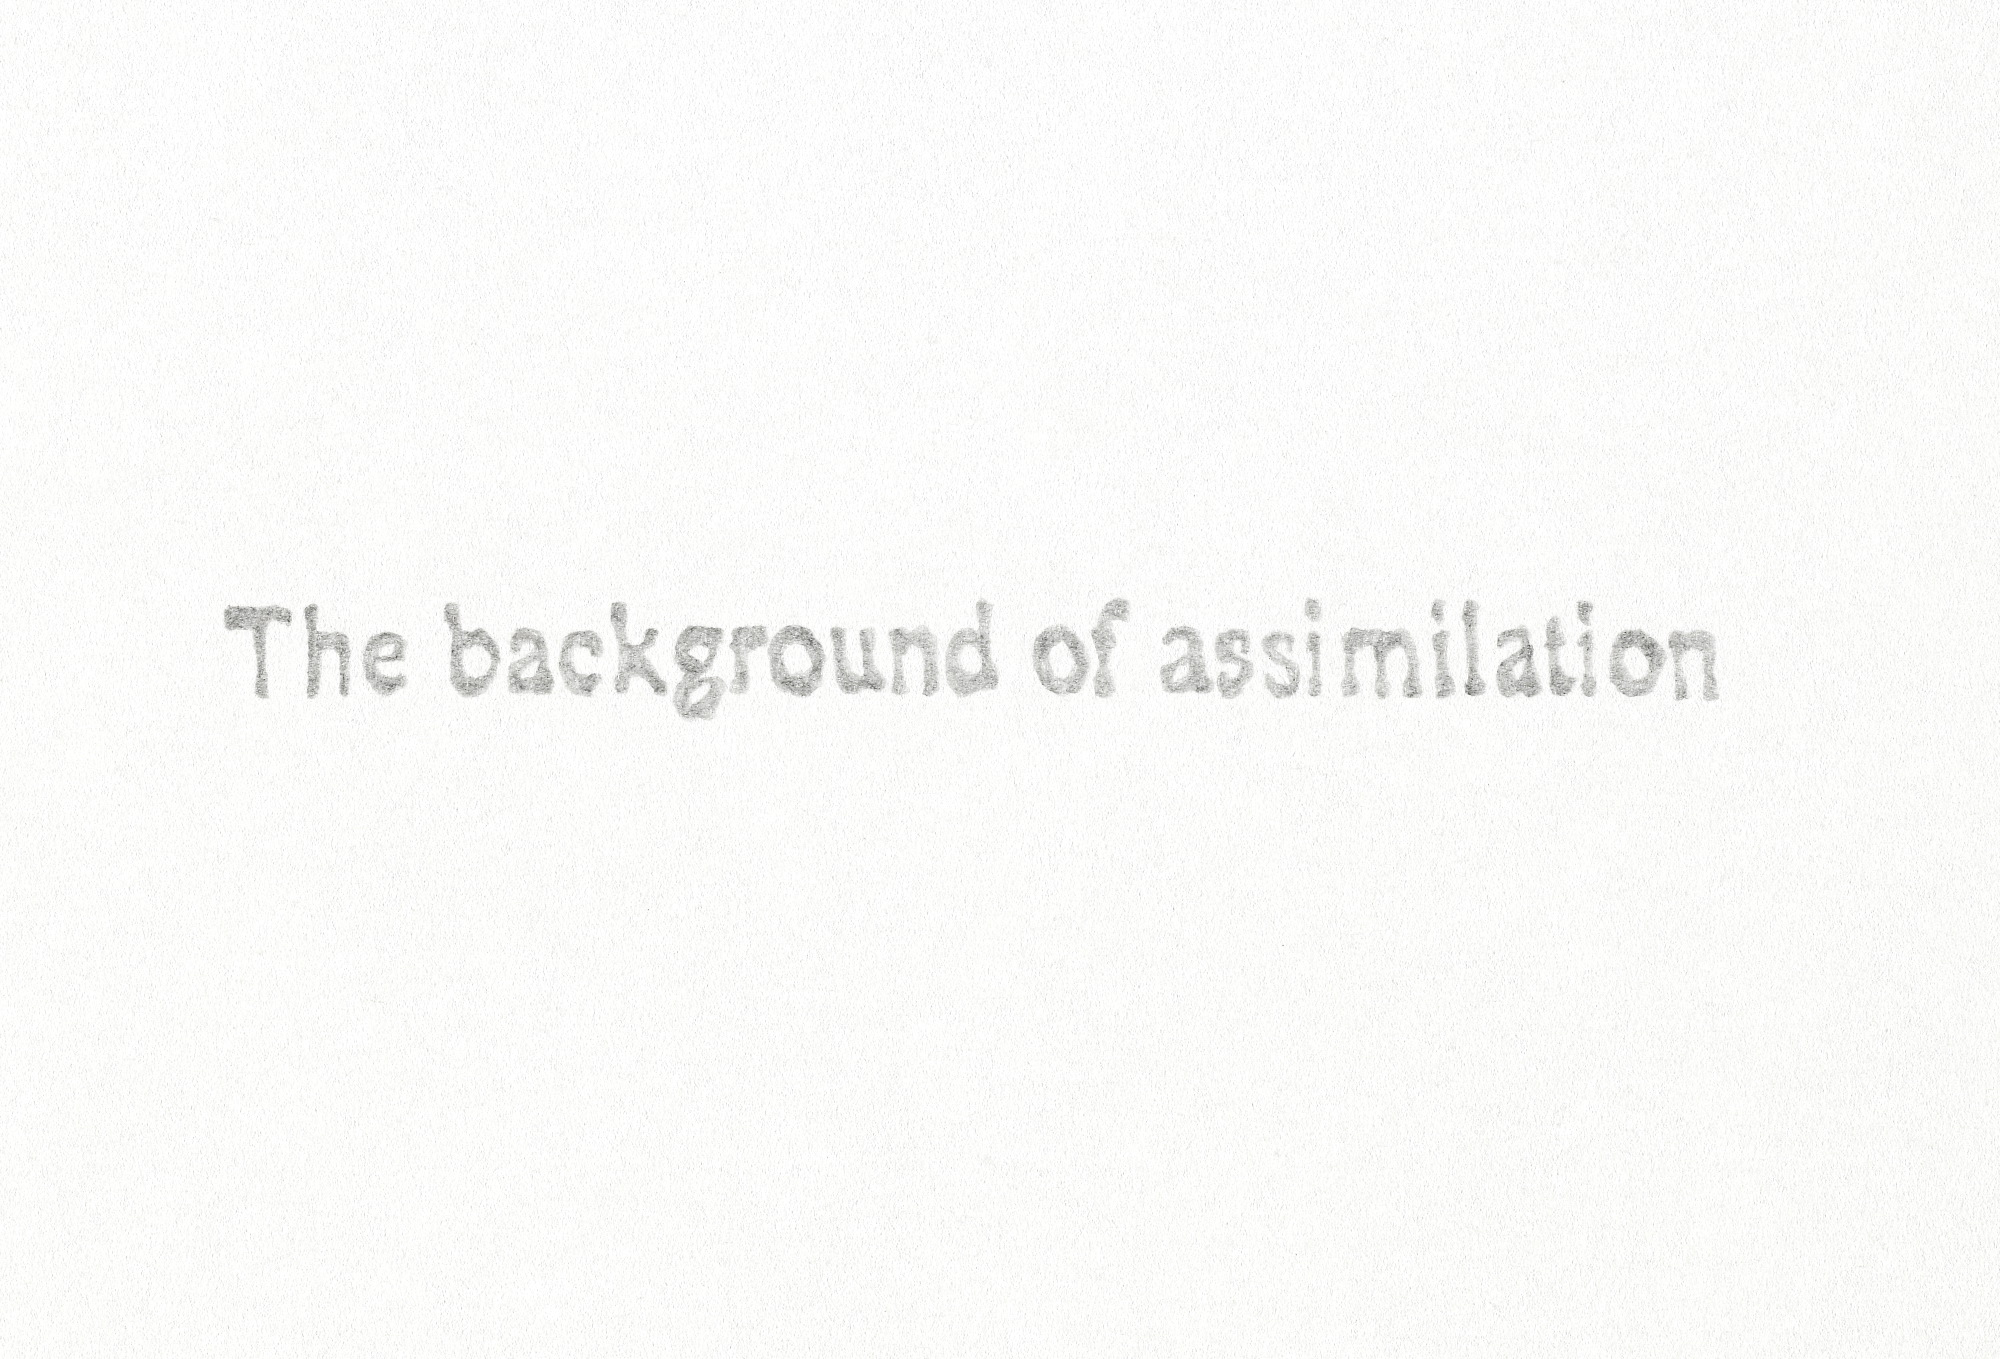 an essay on the assimilation of Free assimilation papers, essays, and research papers.